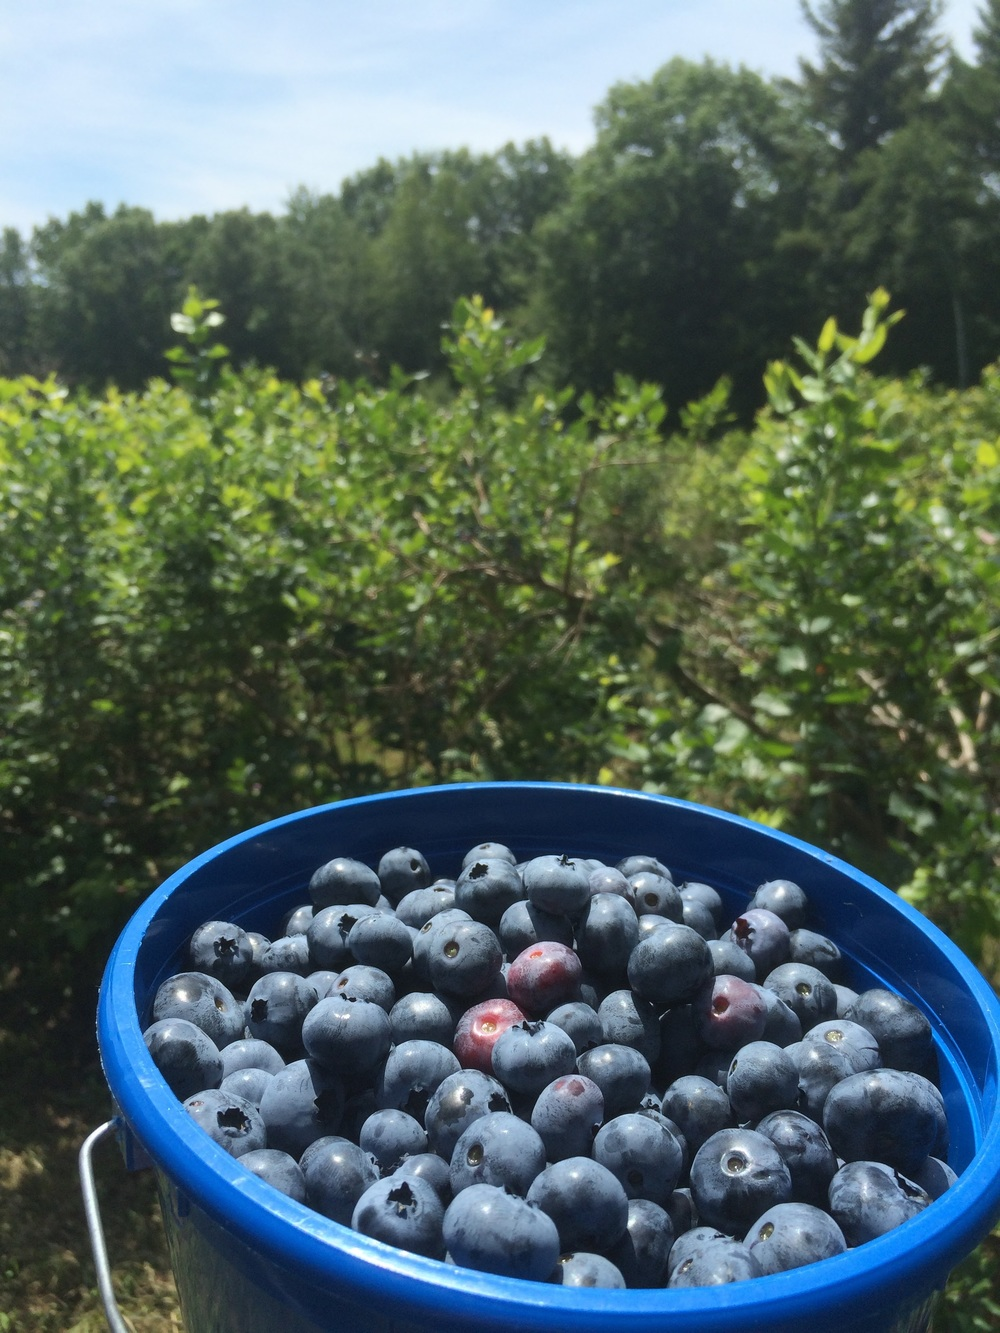 Come to Avaloch for the music, stay for the blueberries